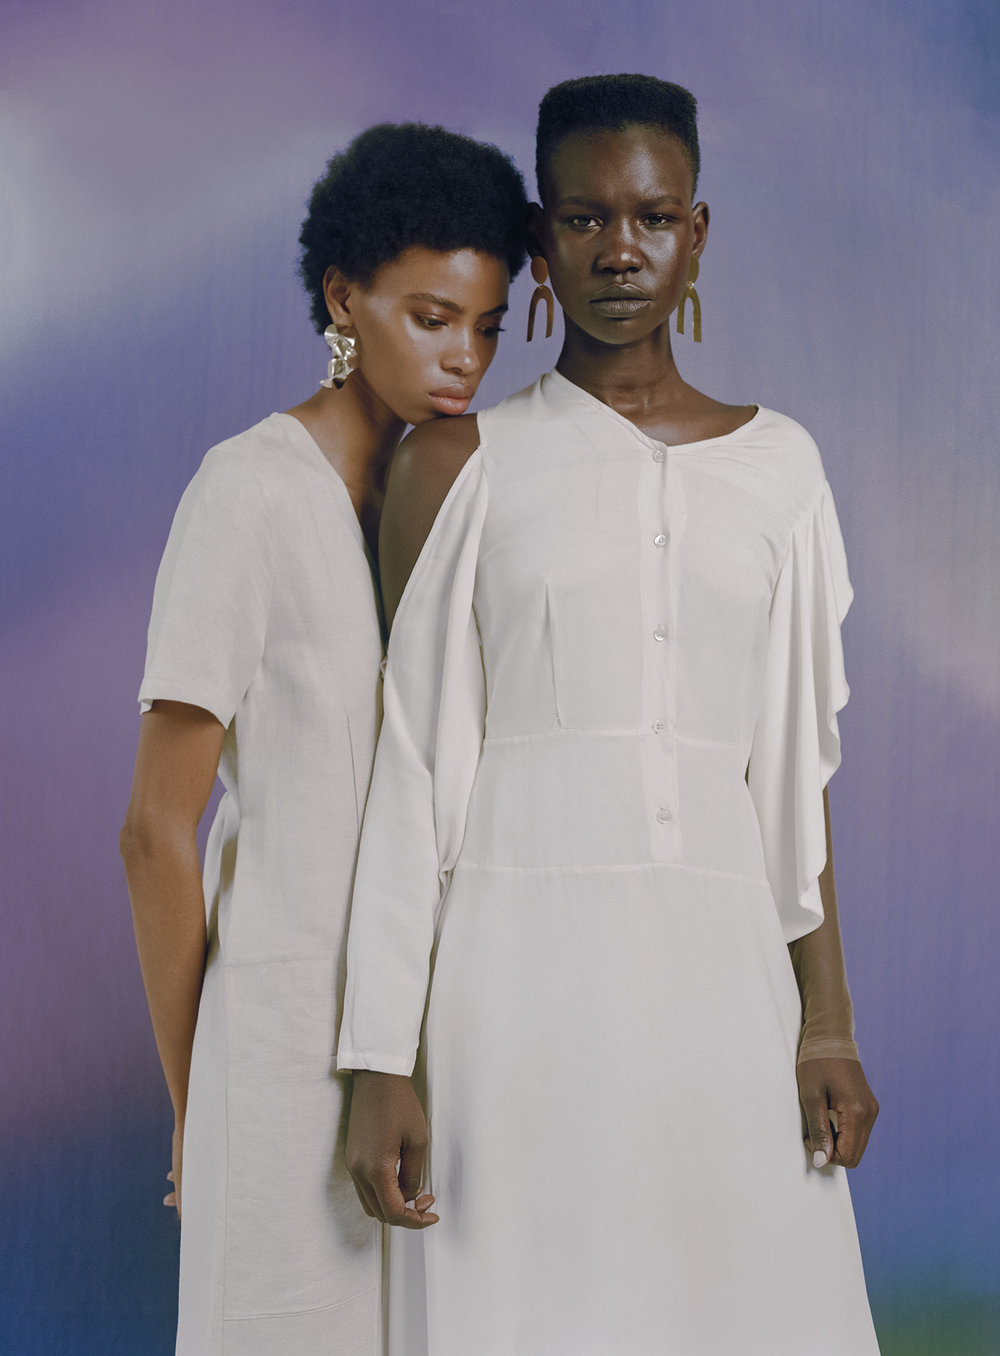 Raschelle wears MAKI OH jumpsuit, CASTLECLIFF NYC earrings. Adot wears MAKI OH dress, ONE STORY earrings.